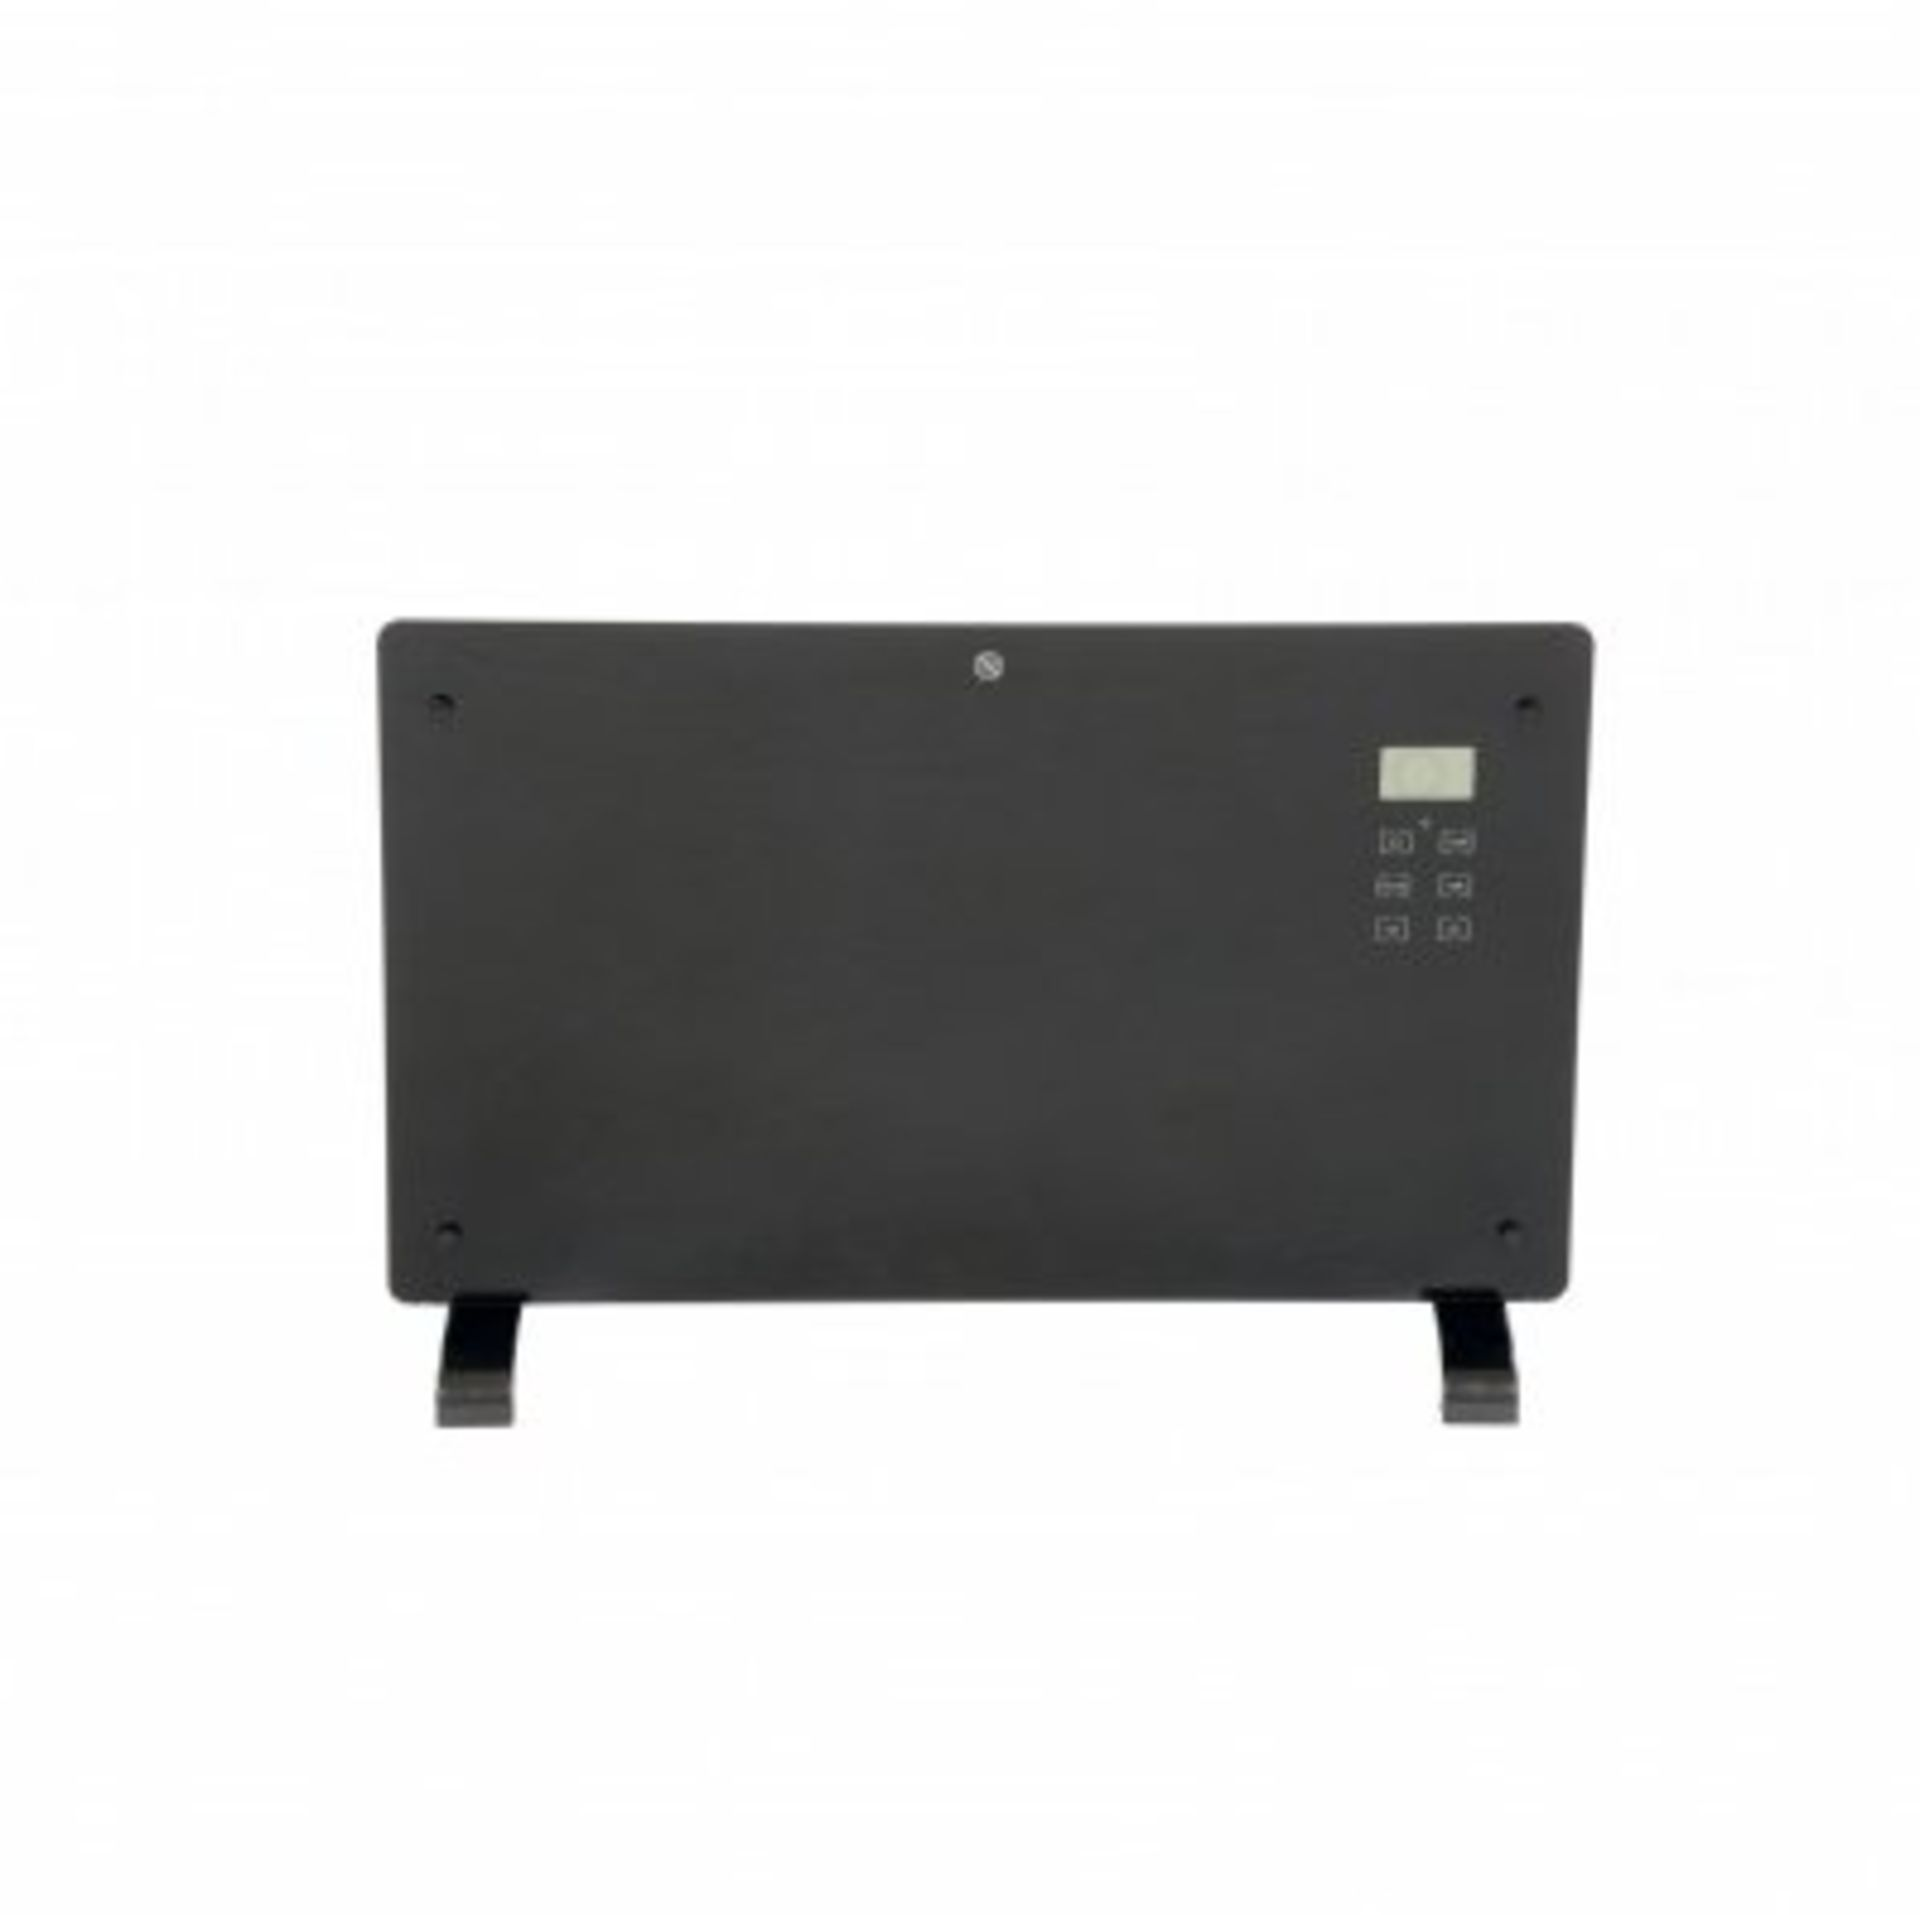 Lot 27 - (RU19) 2000W Black Glass Free Standing Electric Panel Convector Heater Add some class and so...